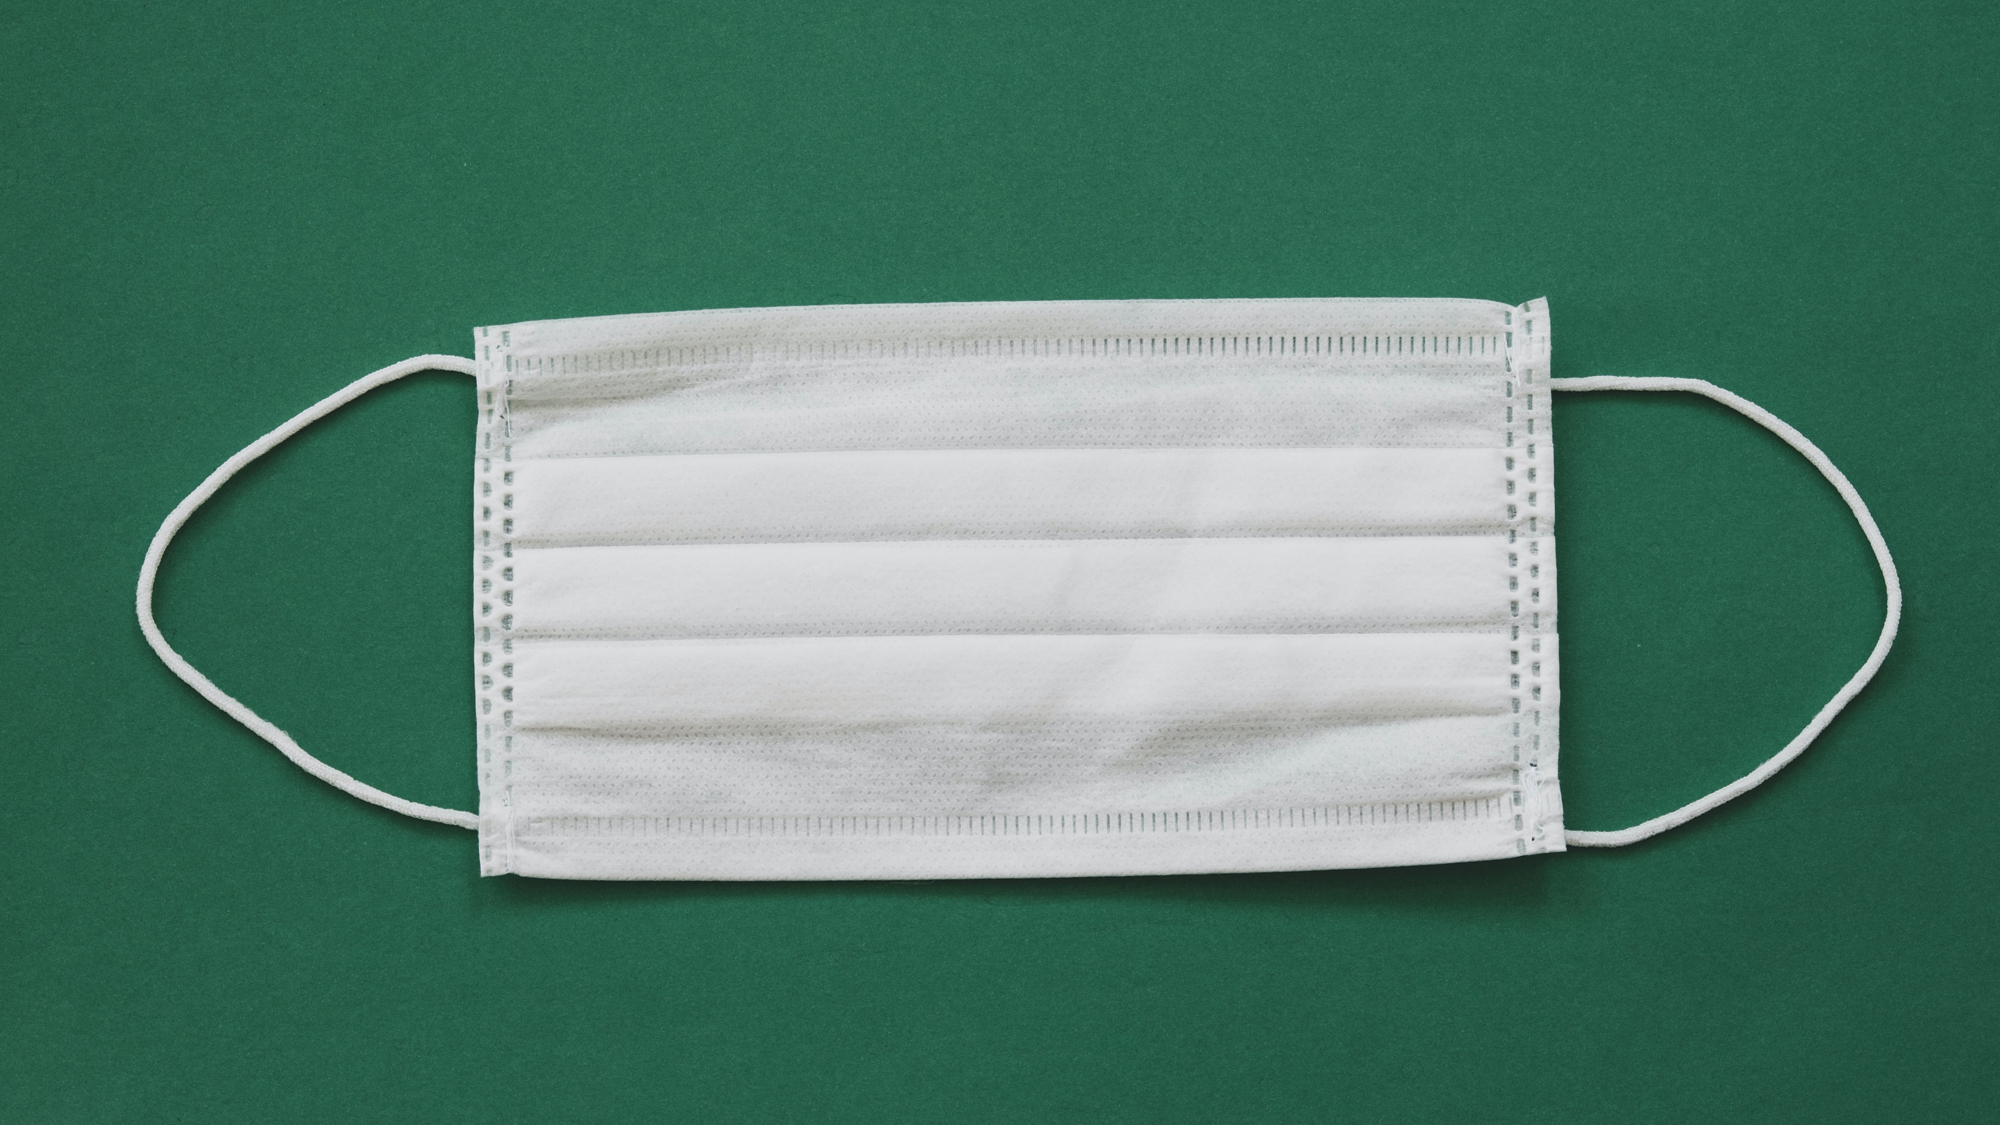 Face mask - part of COVID-19 safety protocols at stadia